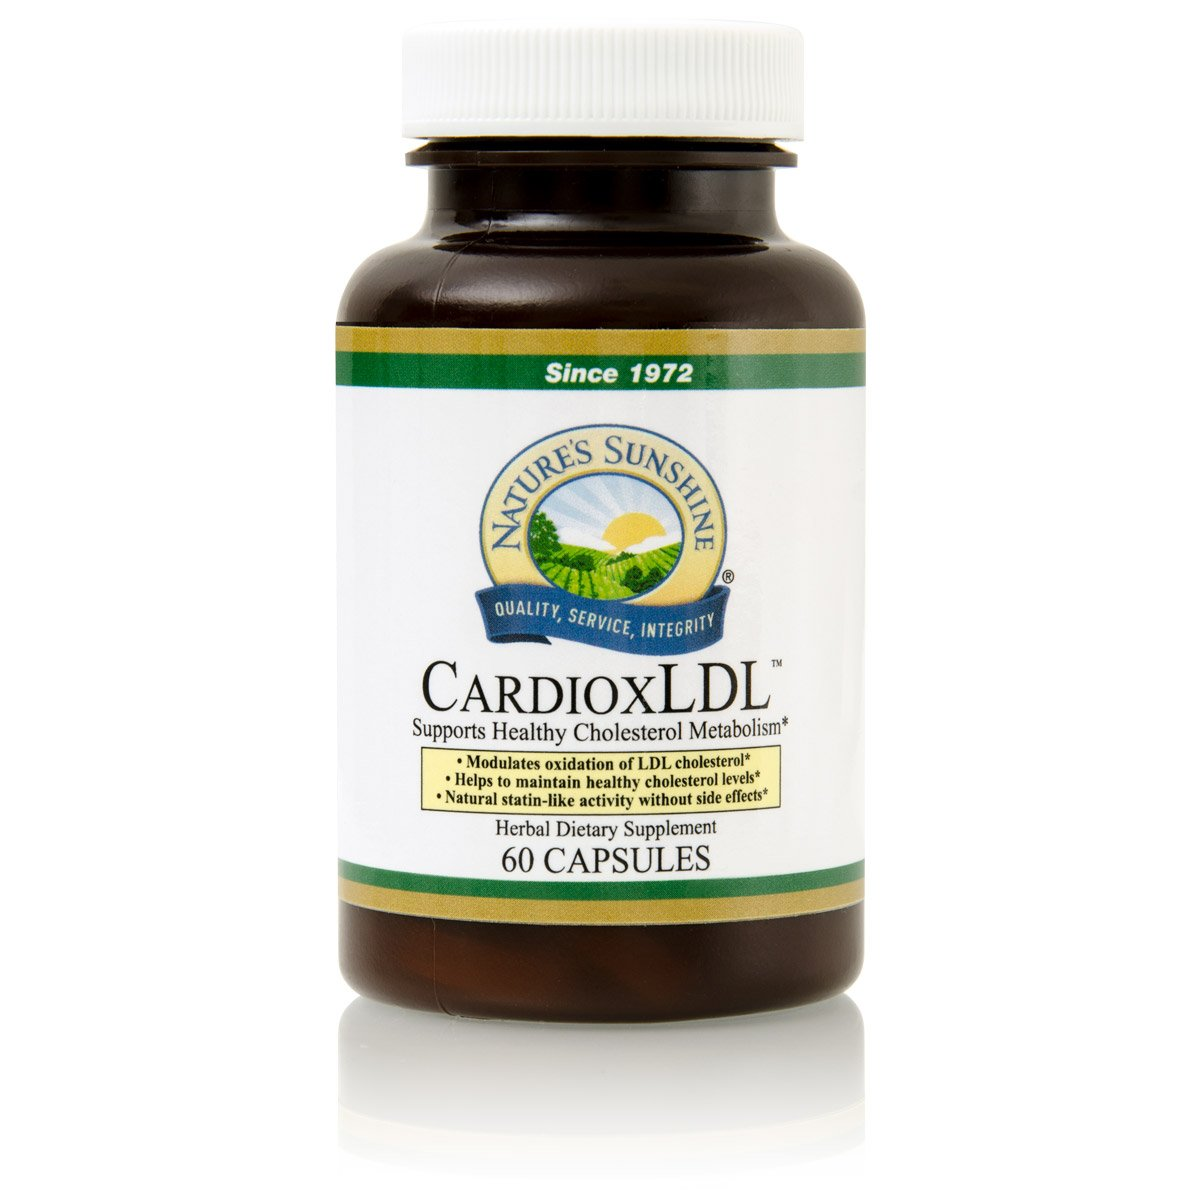 Nature's Sunshine CardioxLDL, 60 Capsules | Cholesterol Supplement with Powerful Herbal Formula That May Help to Modulate LDL Cholesterol Oxidation